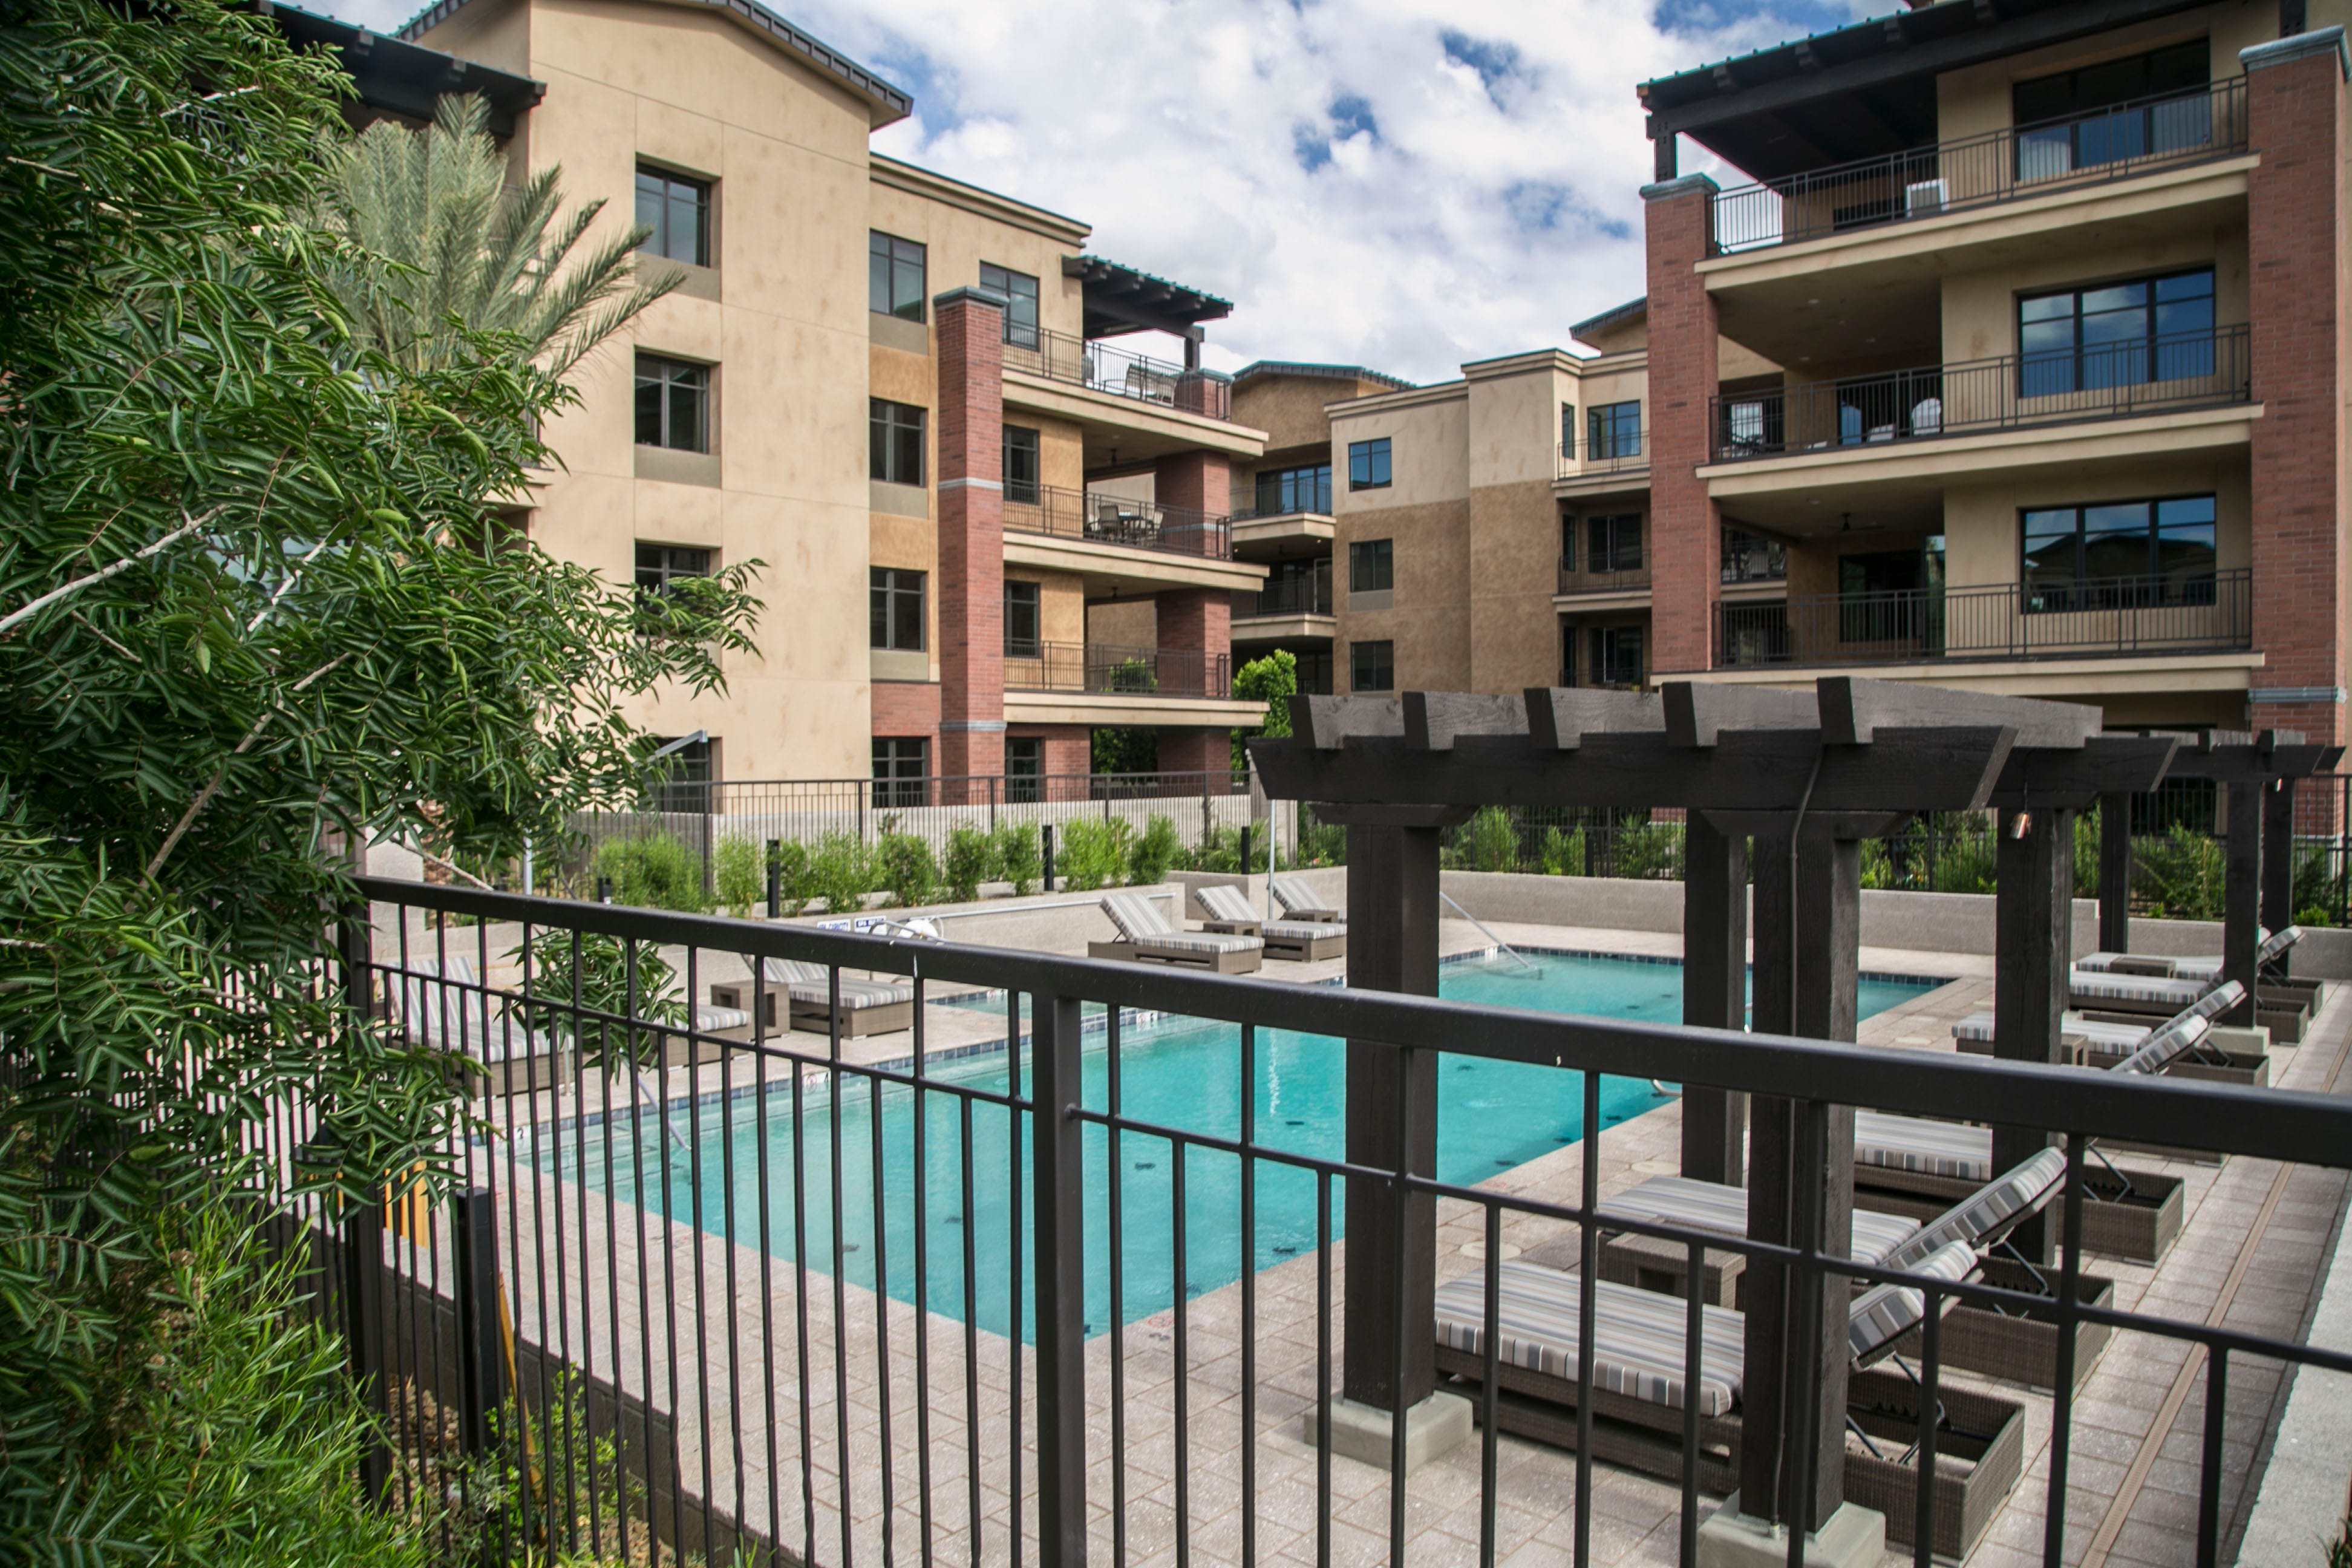 West Valley could soon see more condos as developers eye new hubs